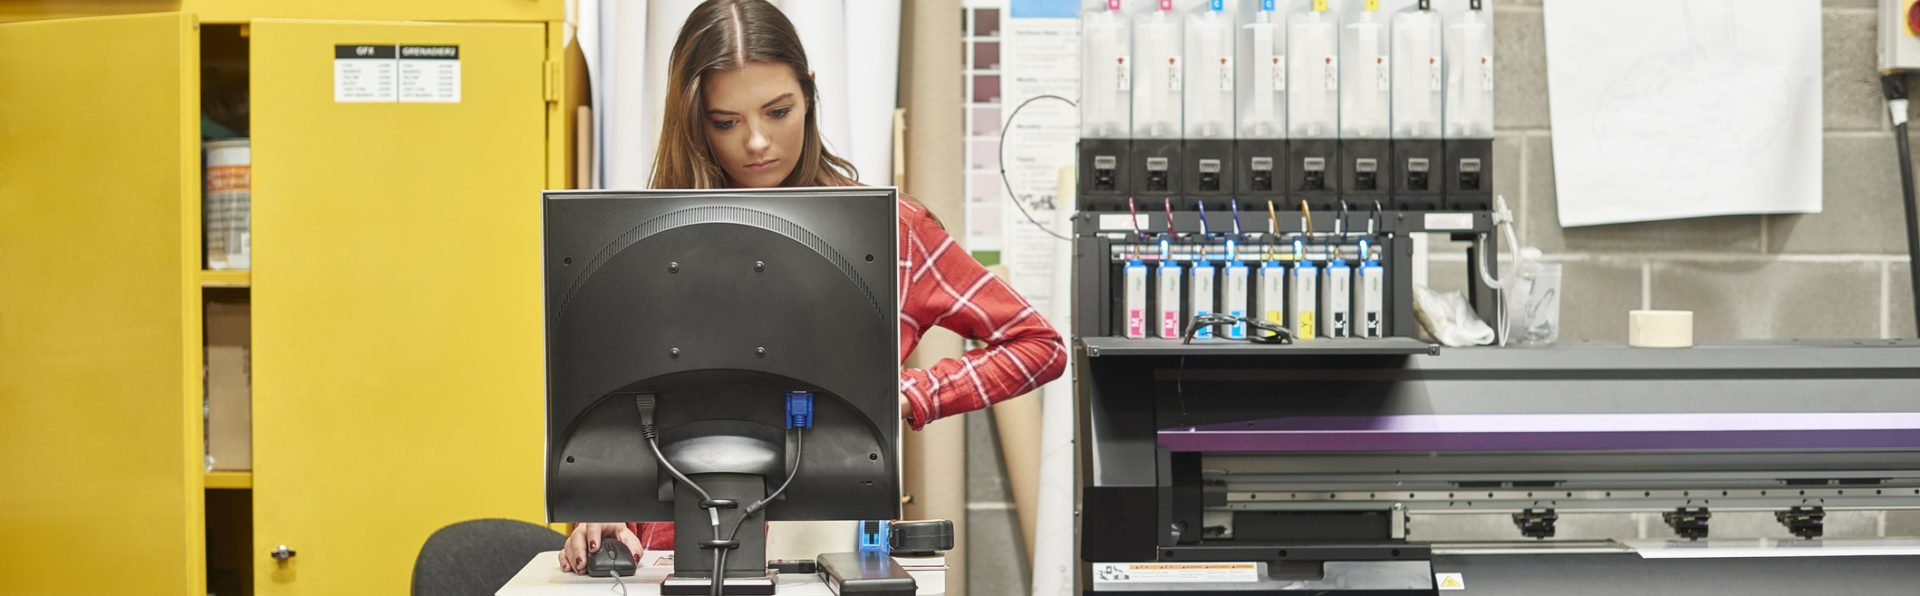 A young woman is working on a digital printing machine.